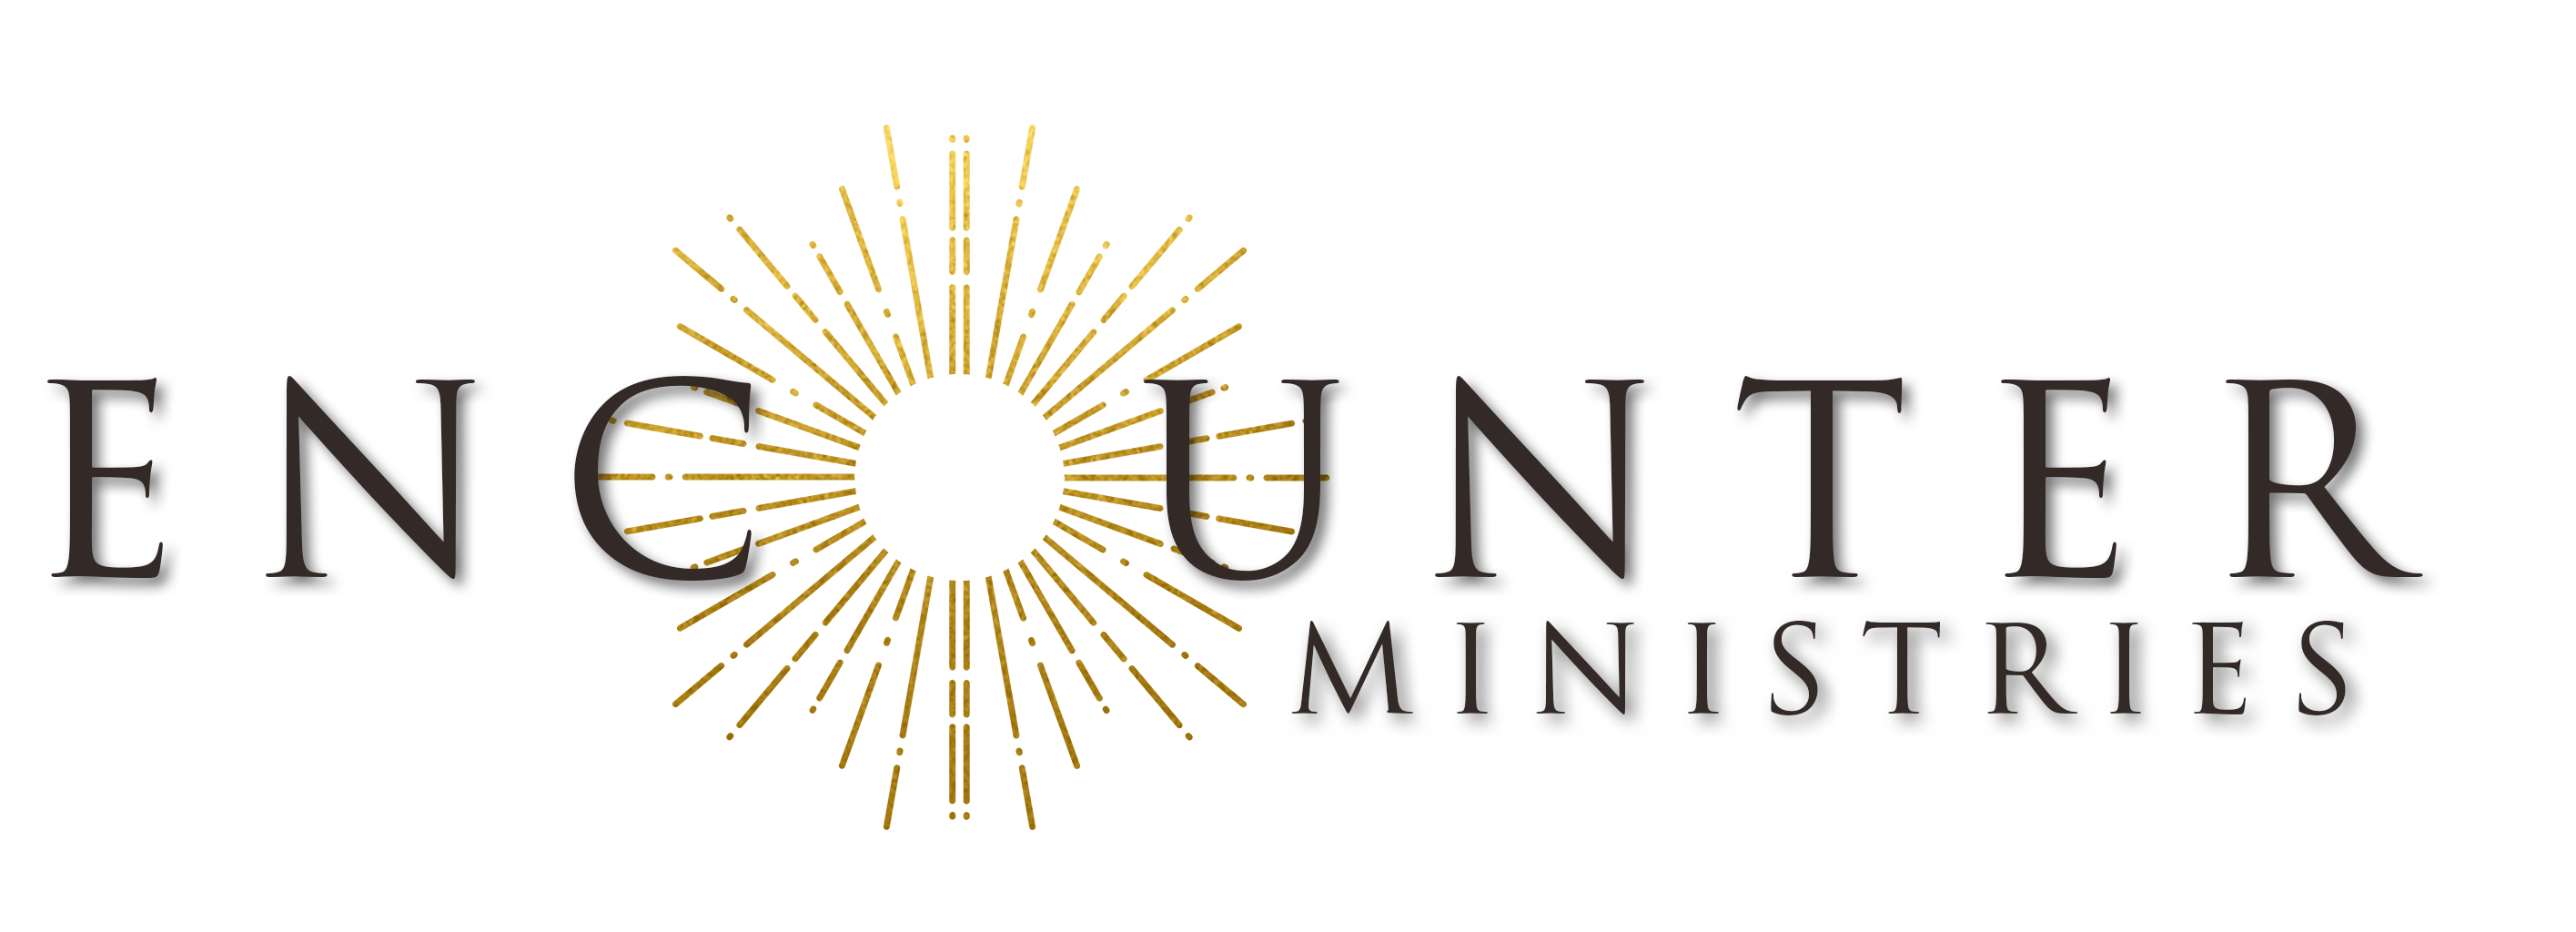 2020 Encounter Conference - Encounter Ministries